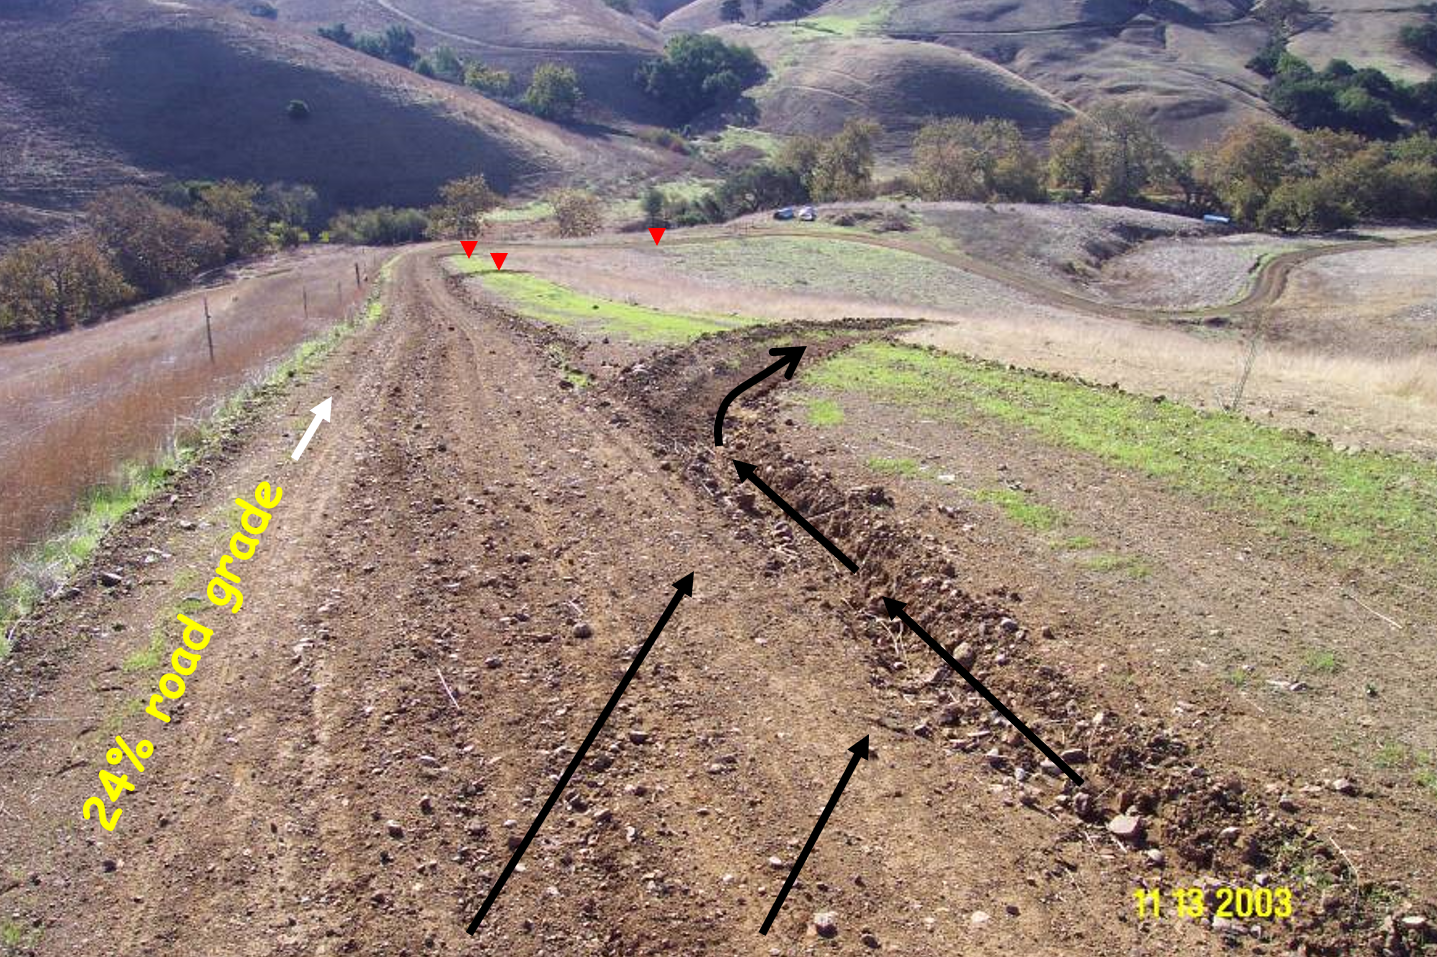 A dirt road with a 24% grade in a field has a ditch leading water off the road surface.